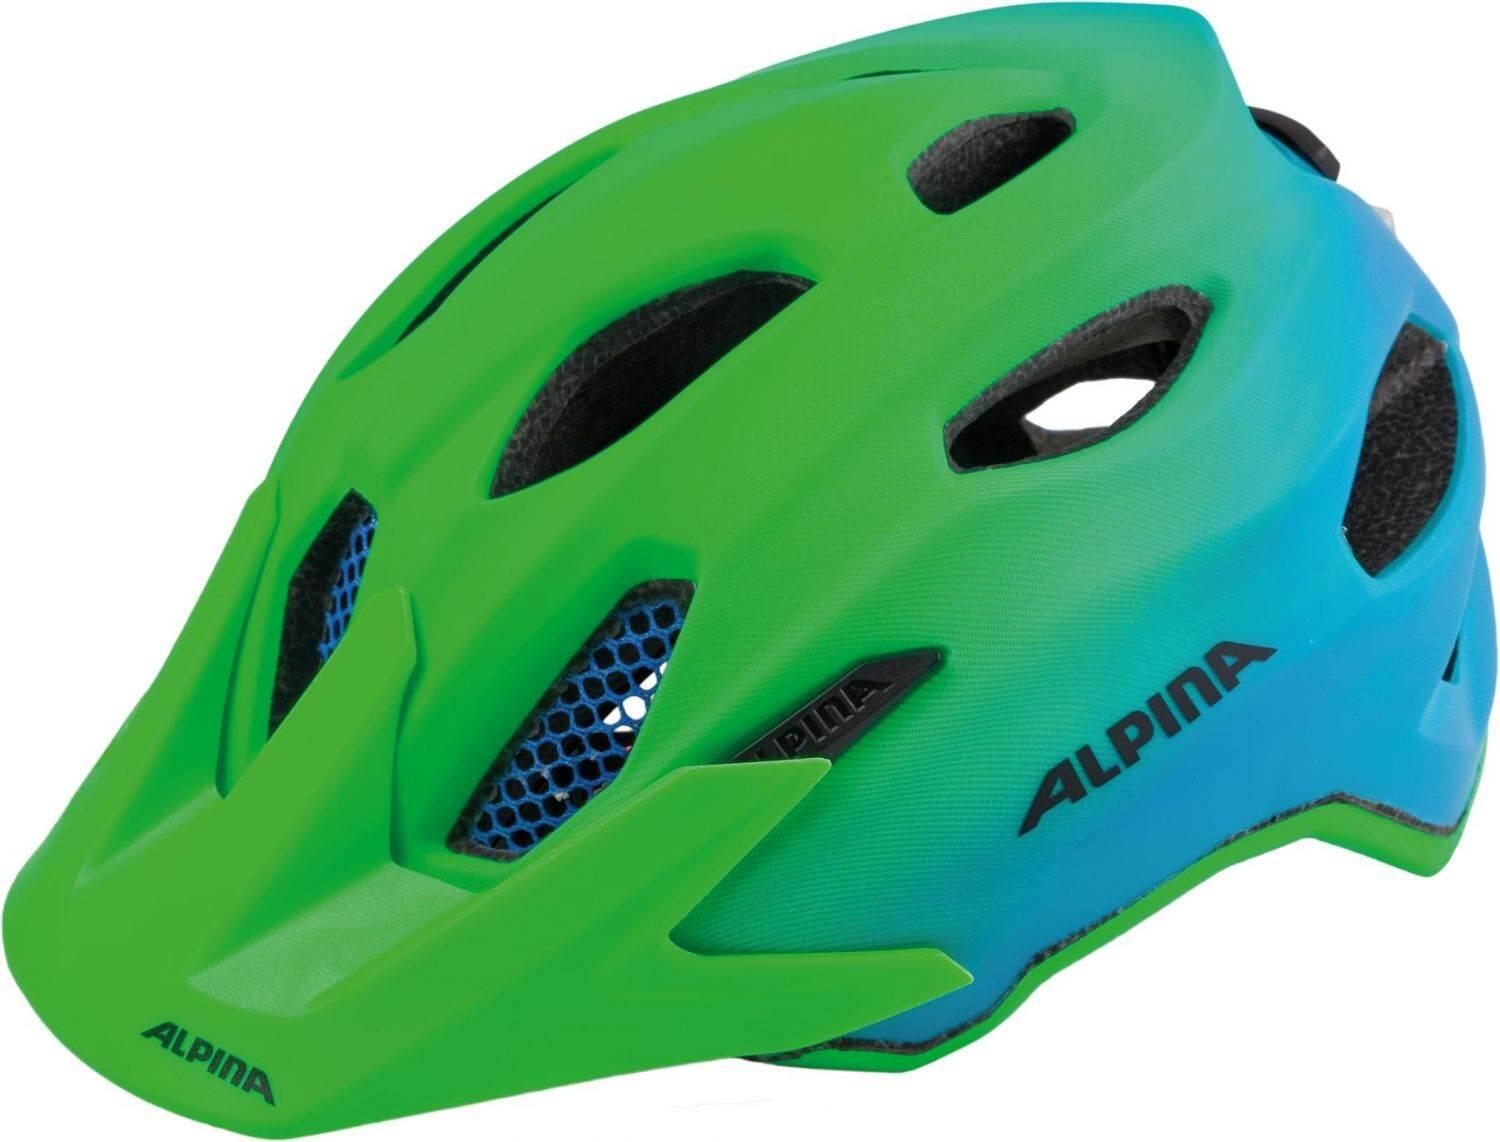 alpina-carapax-jr-flash-fahrradhelm-gr-ouml-szlig-e-51-56-cm-70-green-blue-